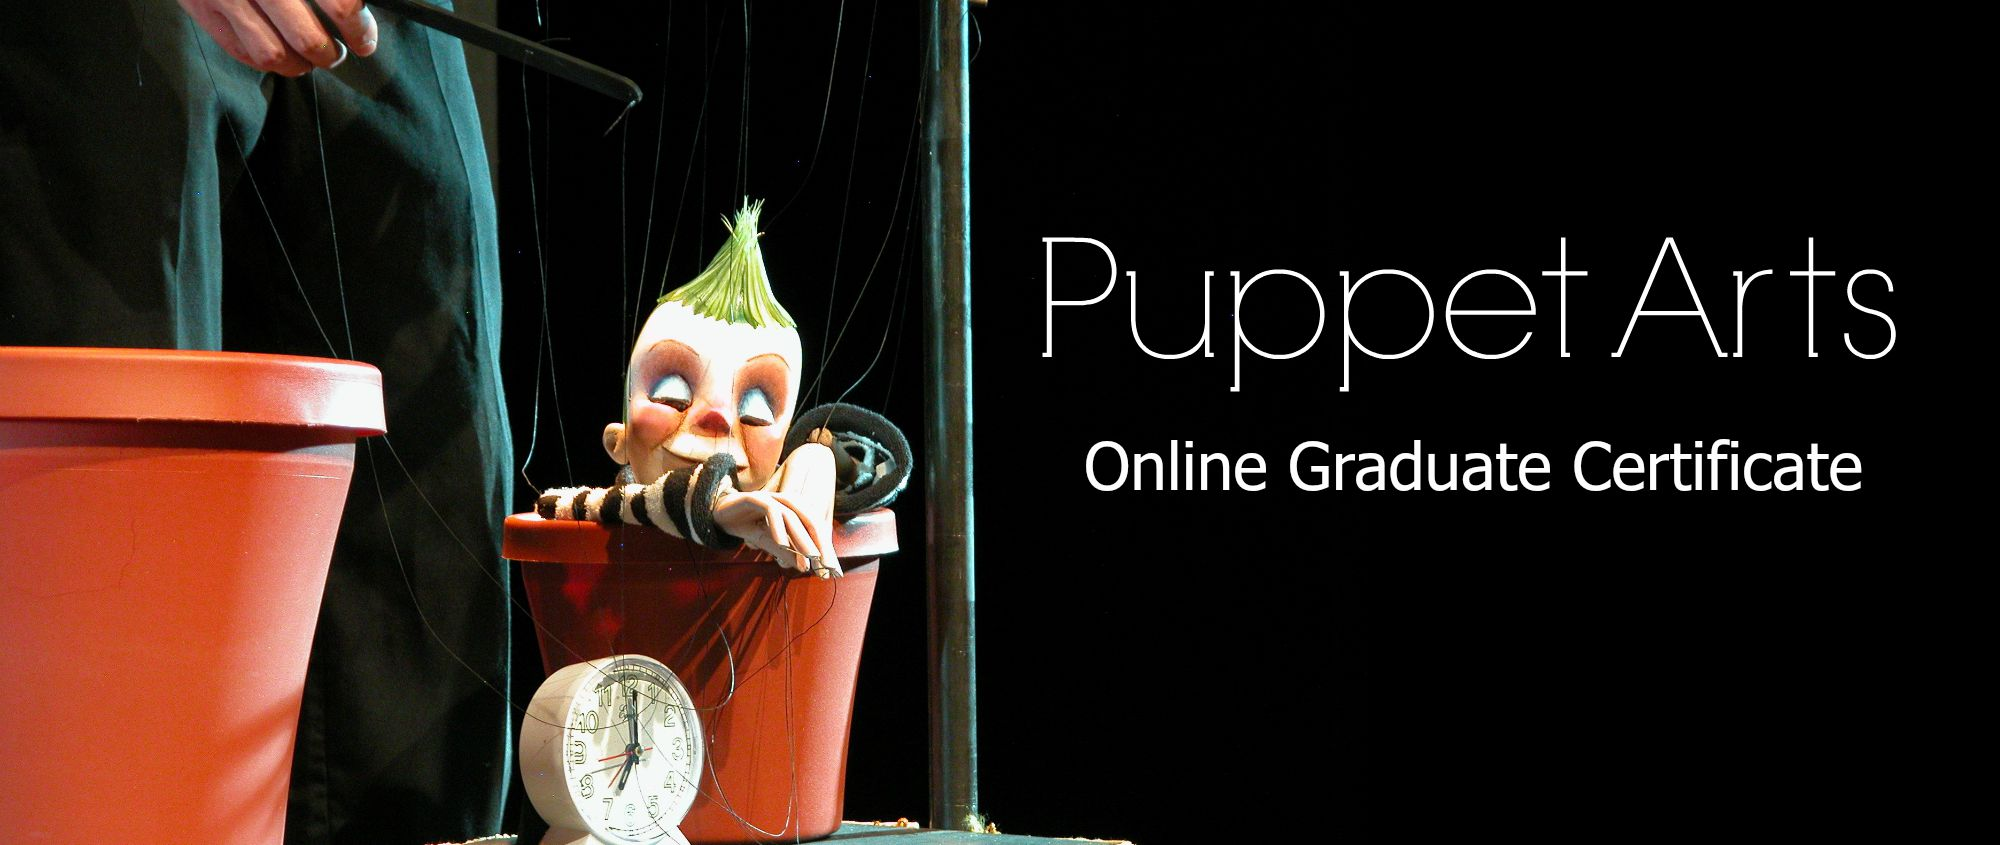 UConn Puppetry Arts Online Graduate Certificate